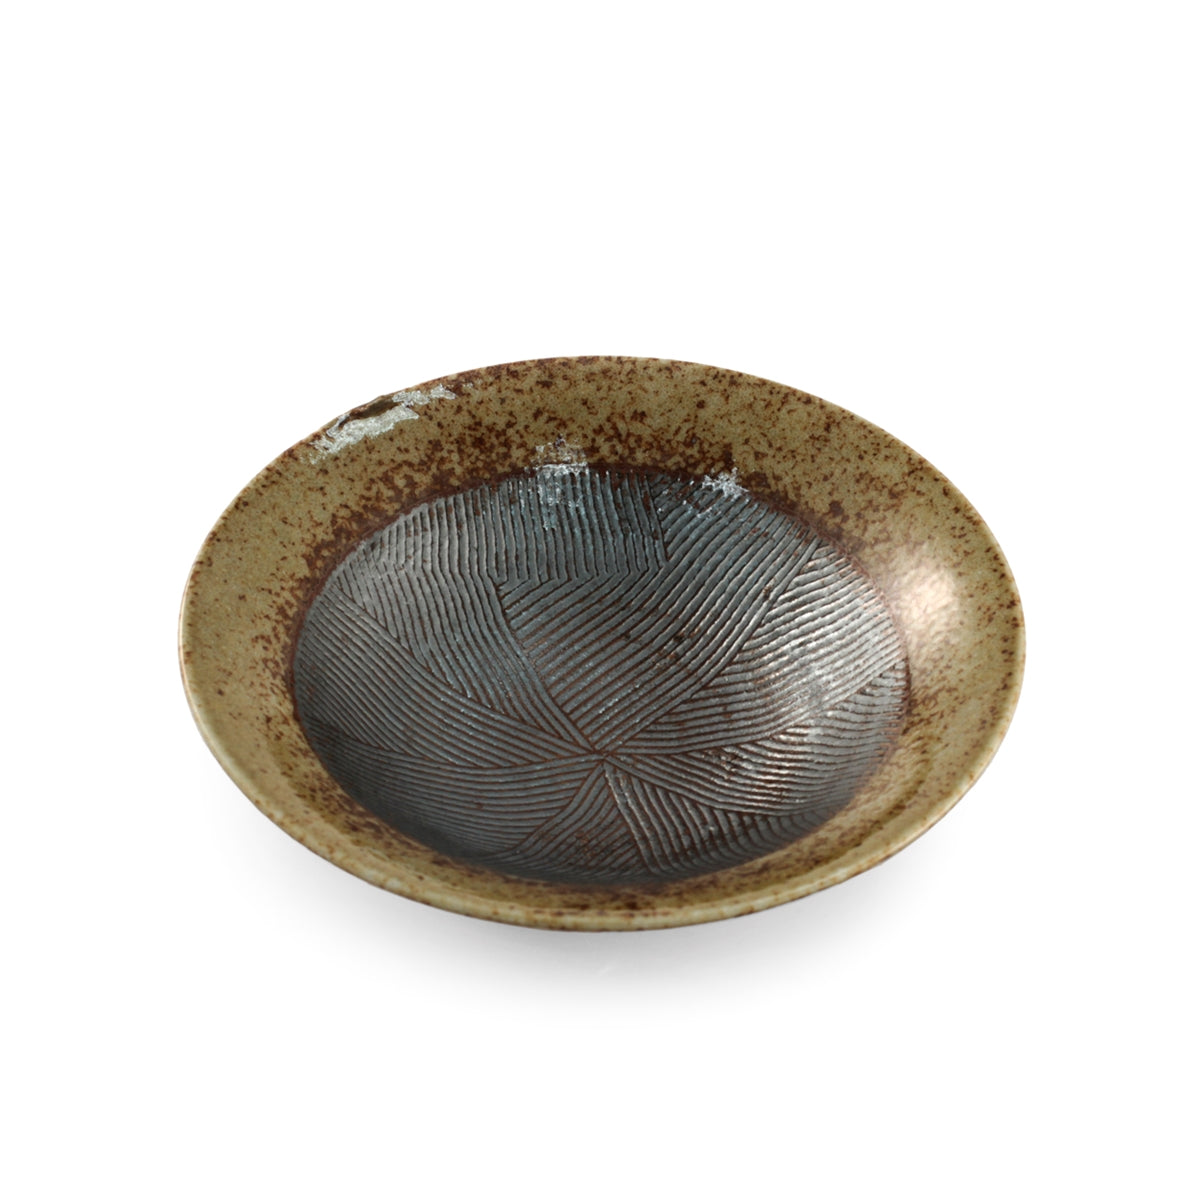 "Haifuki Brown Bowl with Japanese-style Mortar (Suribachi) 6.3""dia x 1.85""ht"